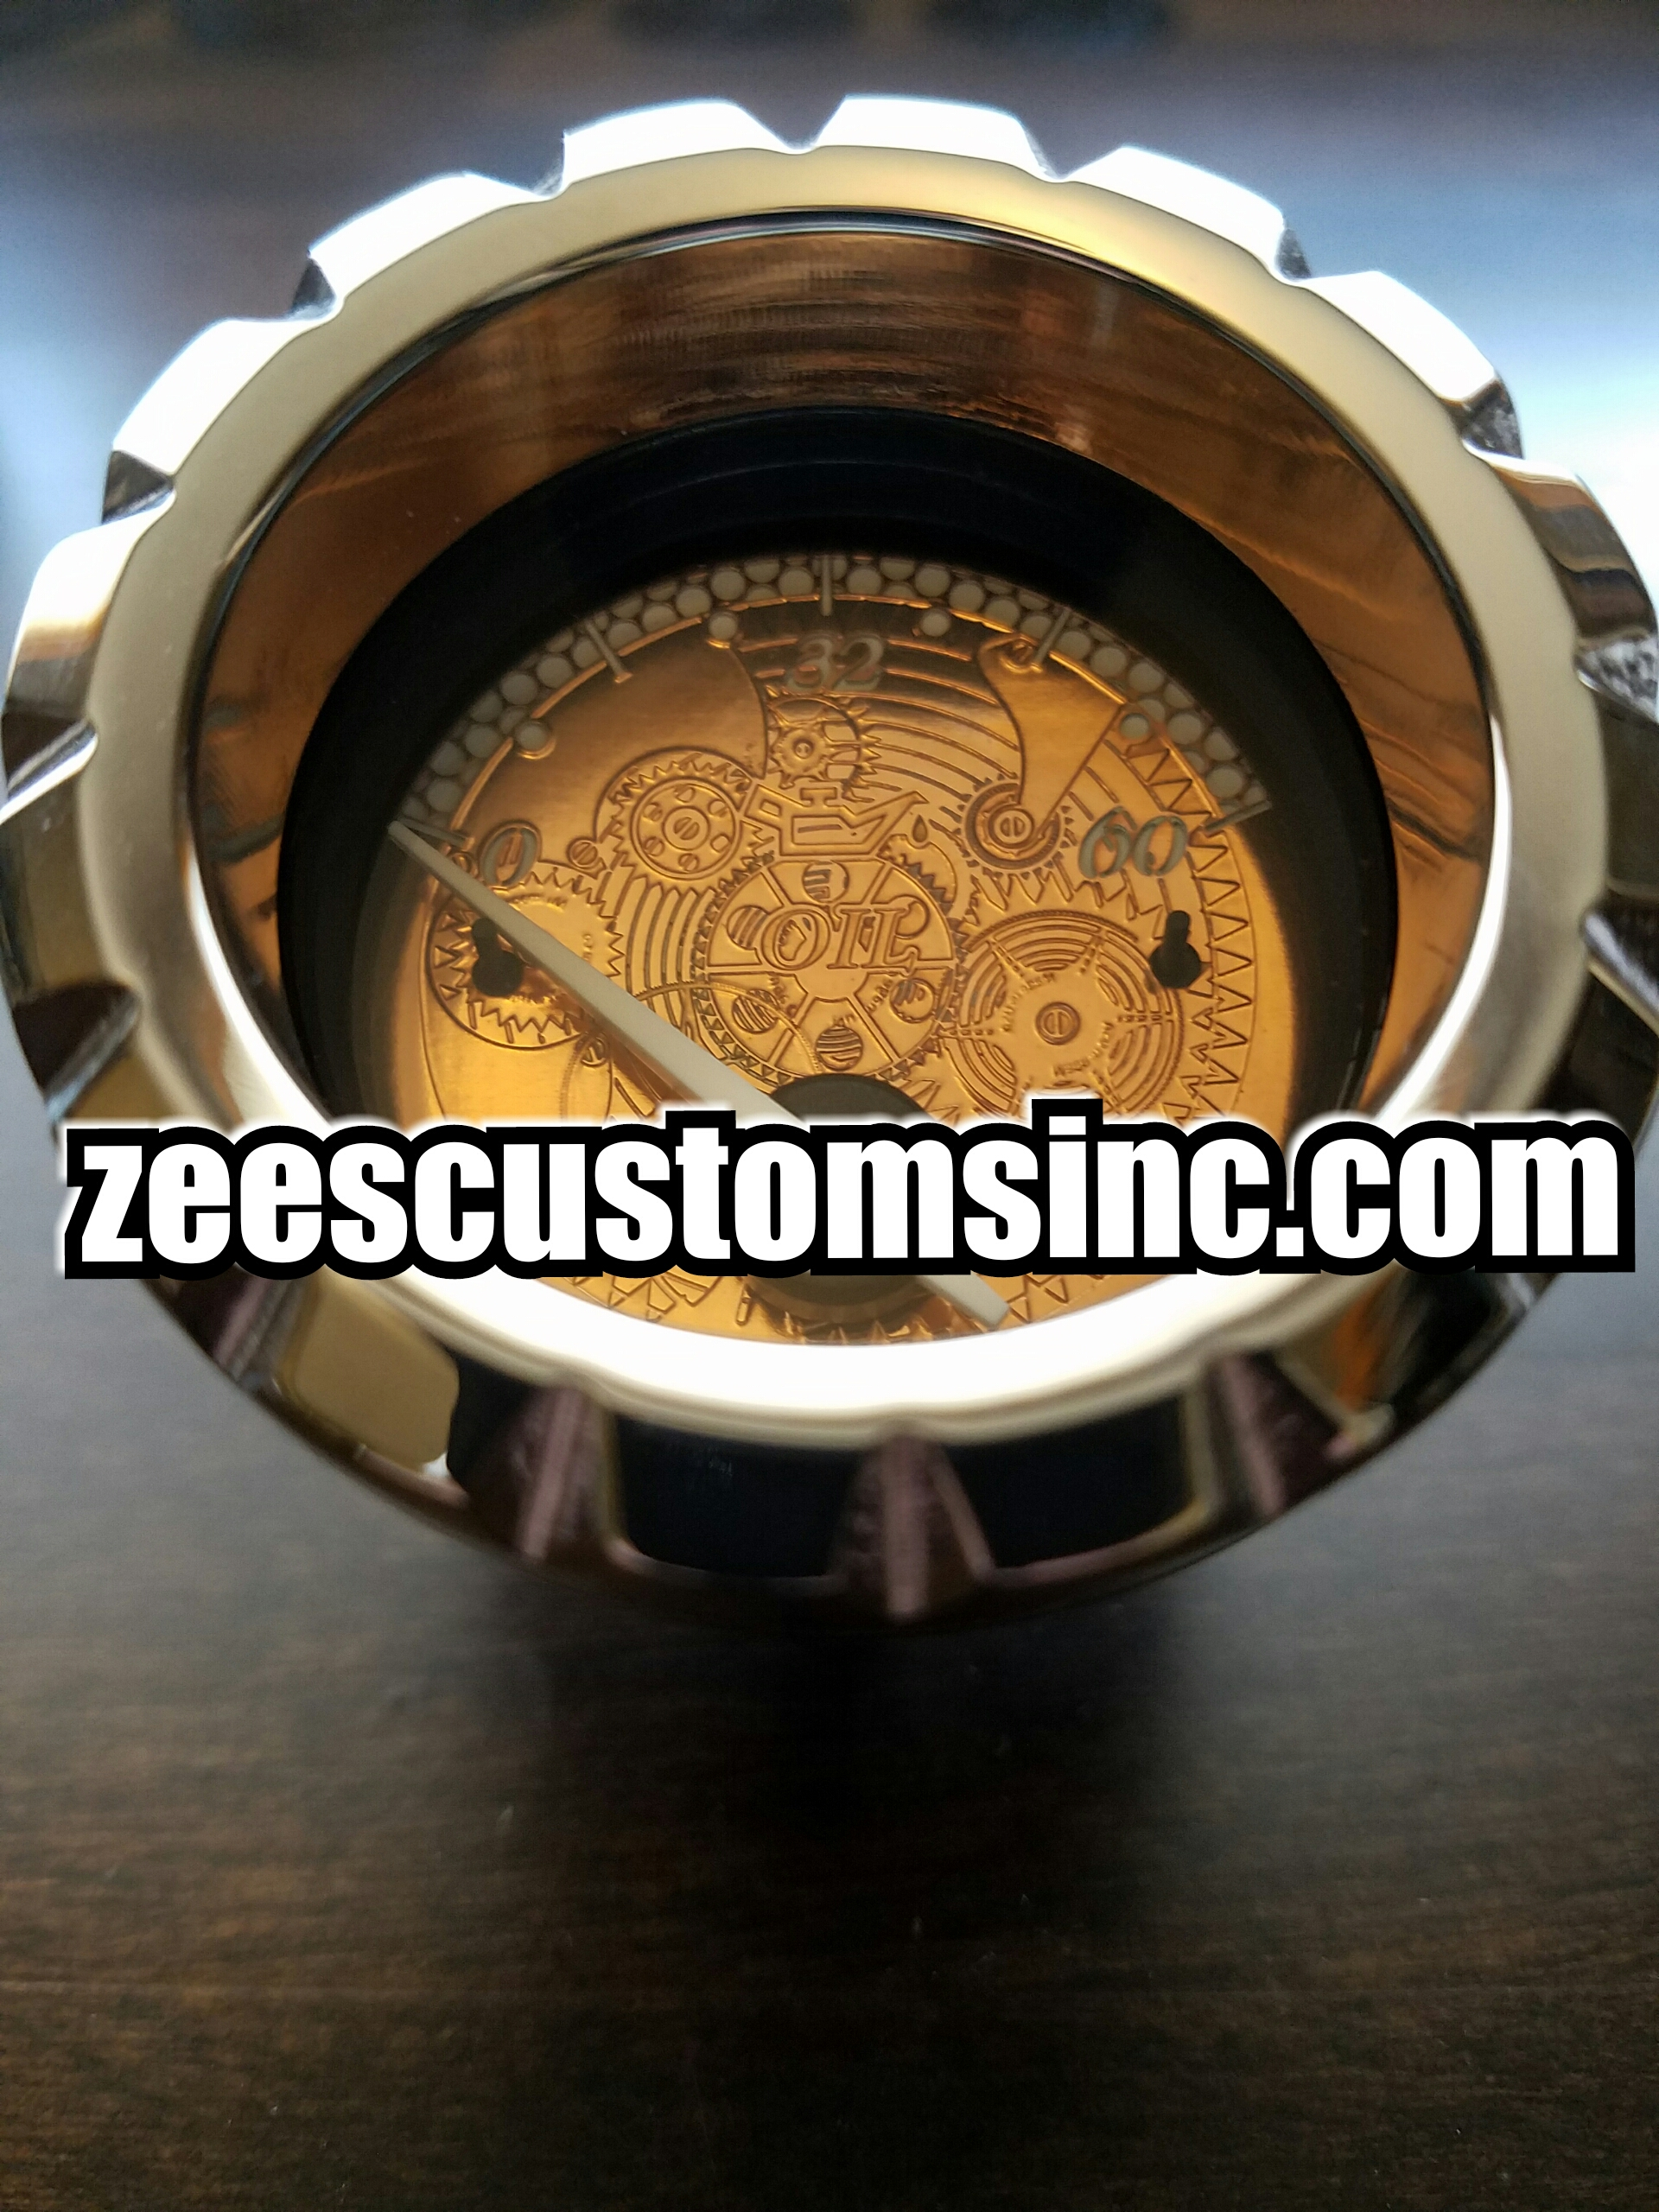 Engraved gear pattern in Real copper! Available for any year or model. With notched chrome bezel